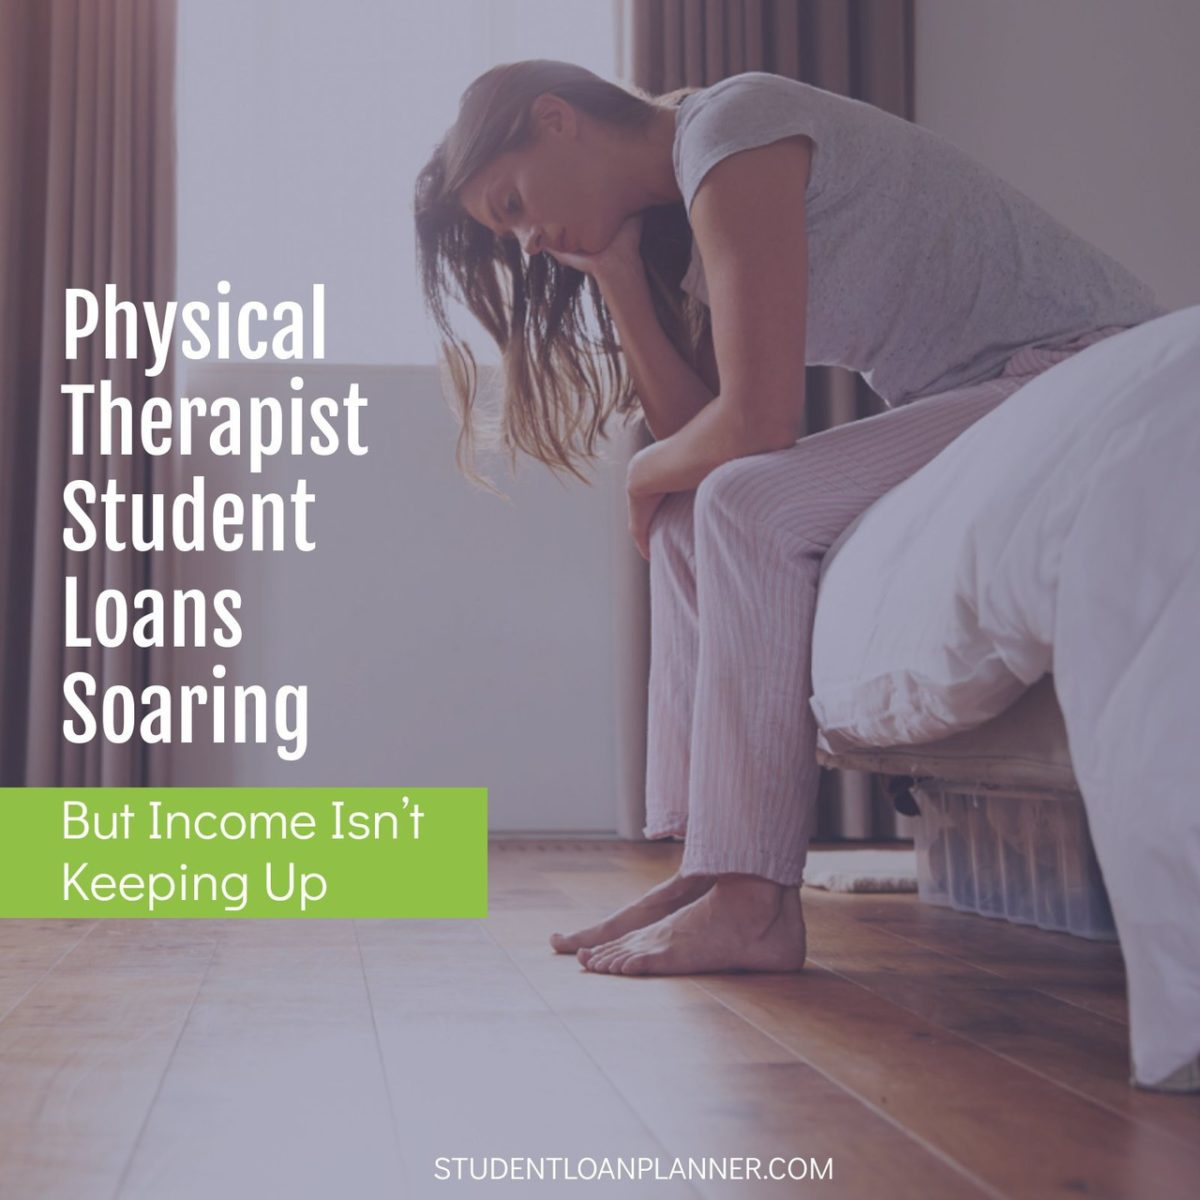 Confusing repayment programs and poor financial guidance costs physical therapists money.Here are some common mistakes DPTs make as well as helpful tips for paying off your physical therapy school loans. #StudentDebt